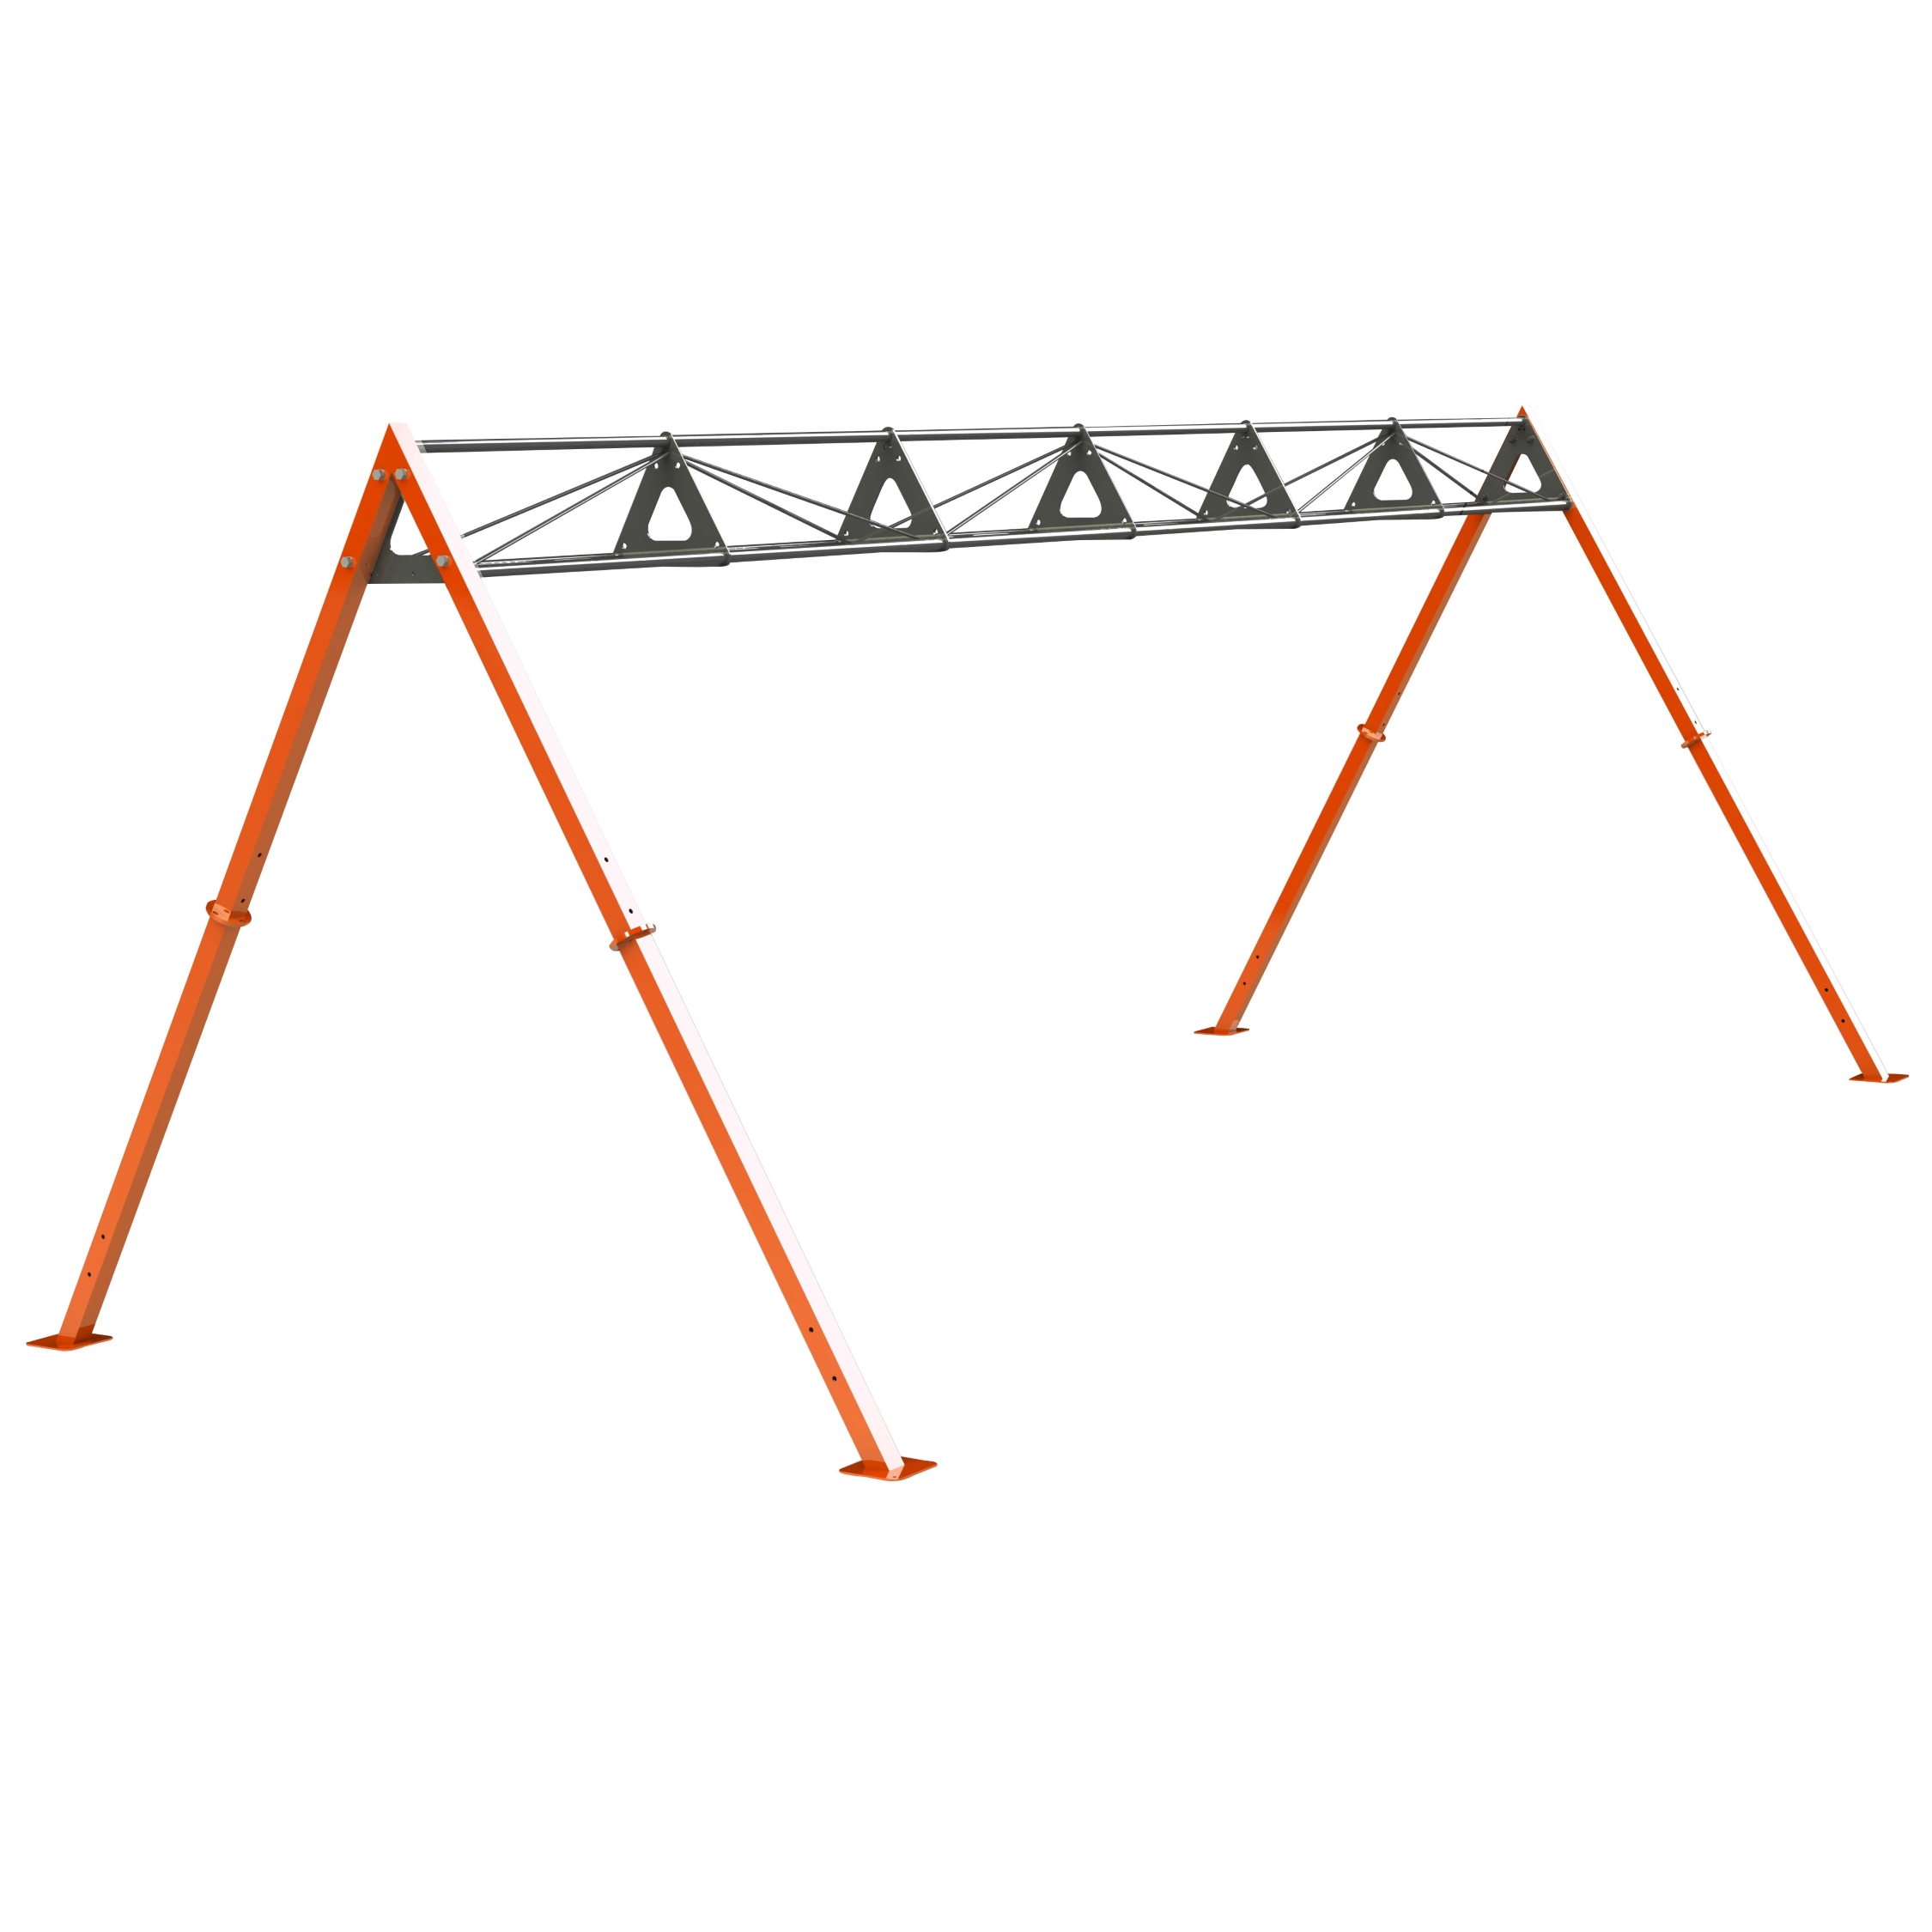 2m Suspension Training Frame (4 Users)